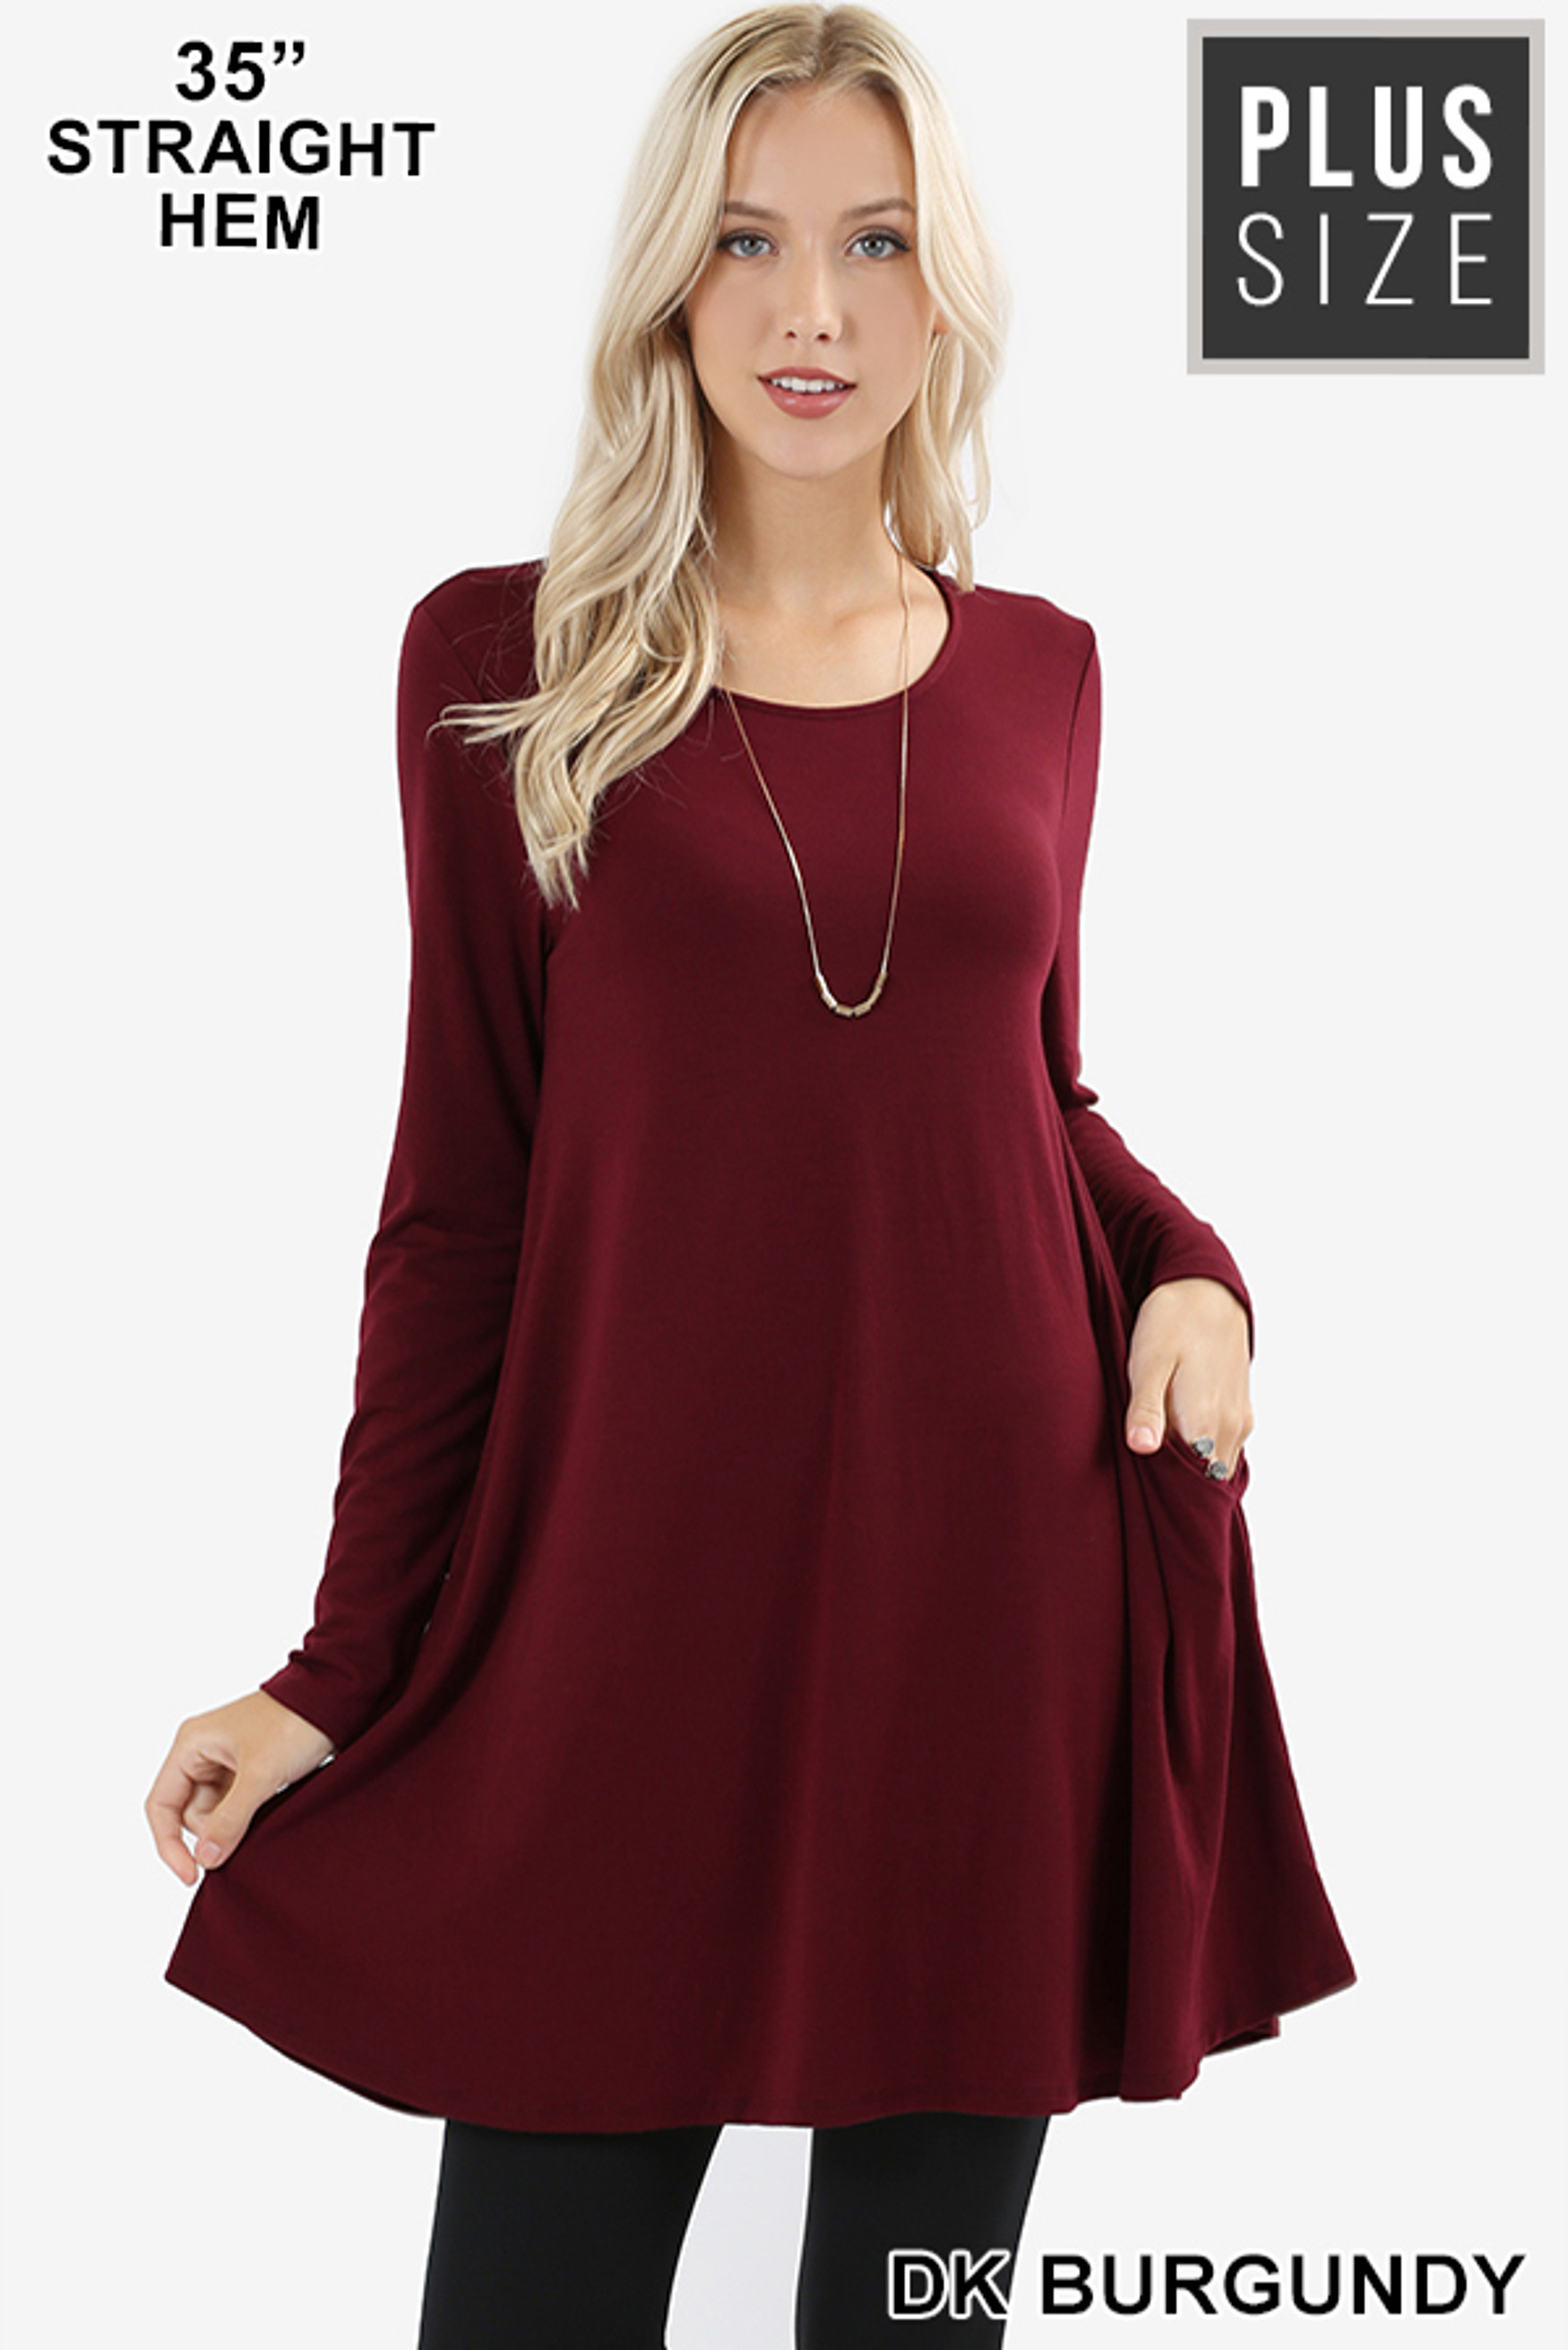 Front of Dk Burgundy Long Sleeve Plus Size Swing Tunic with Pockets